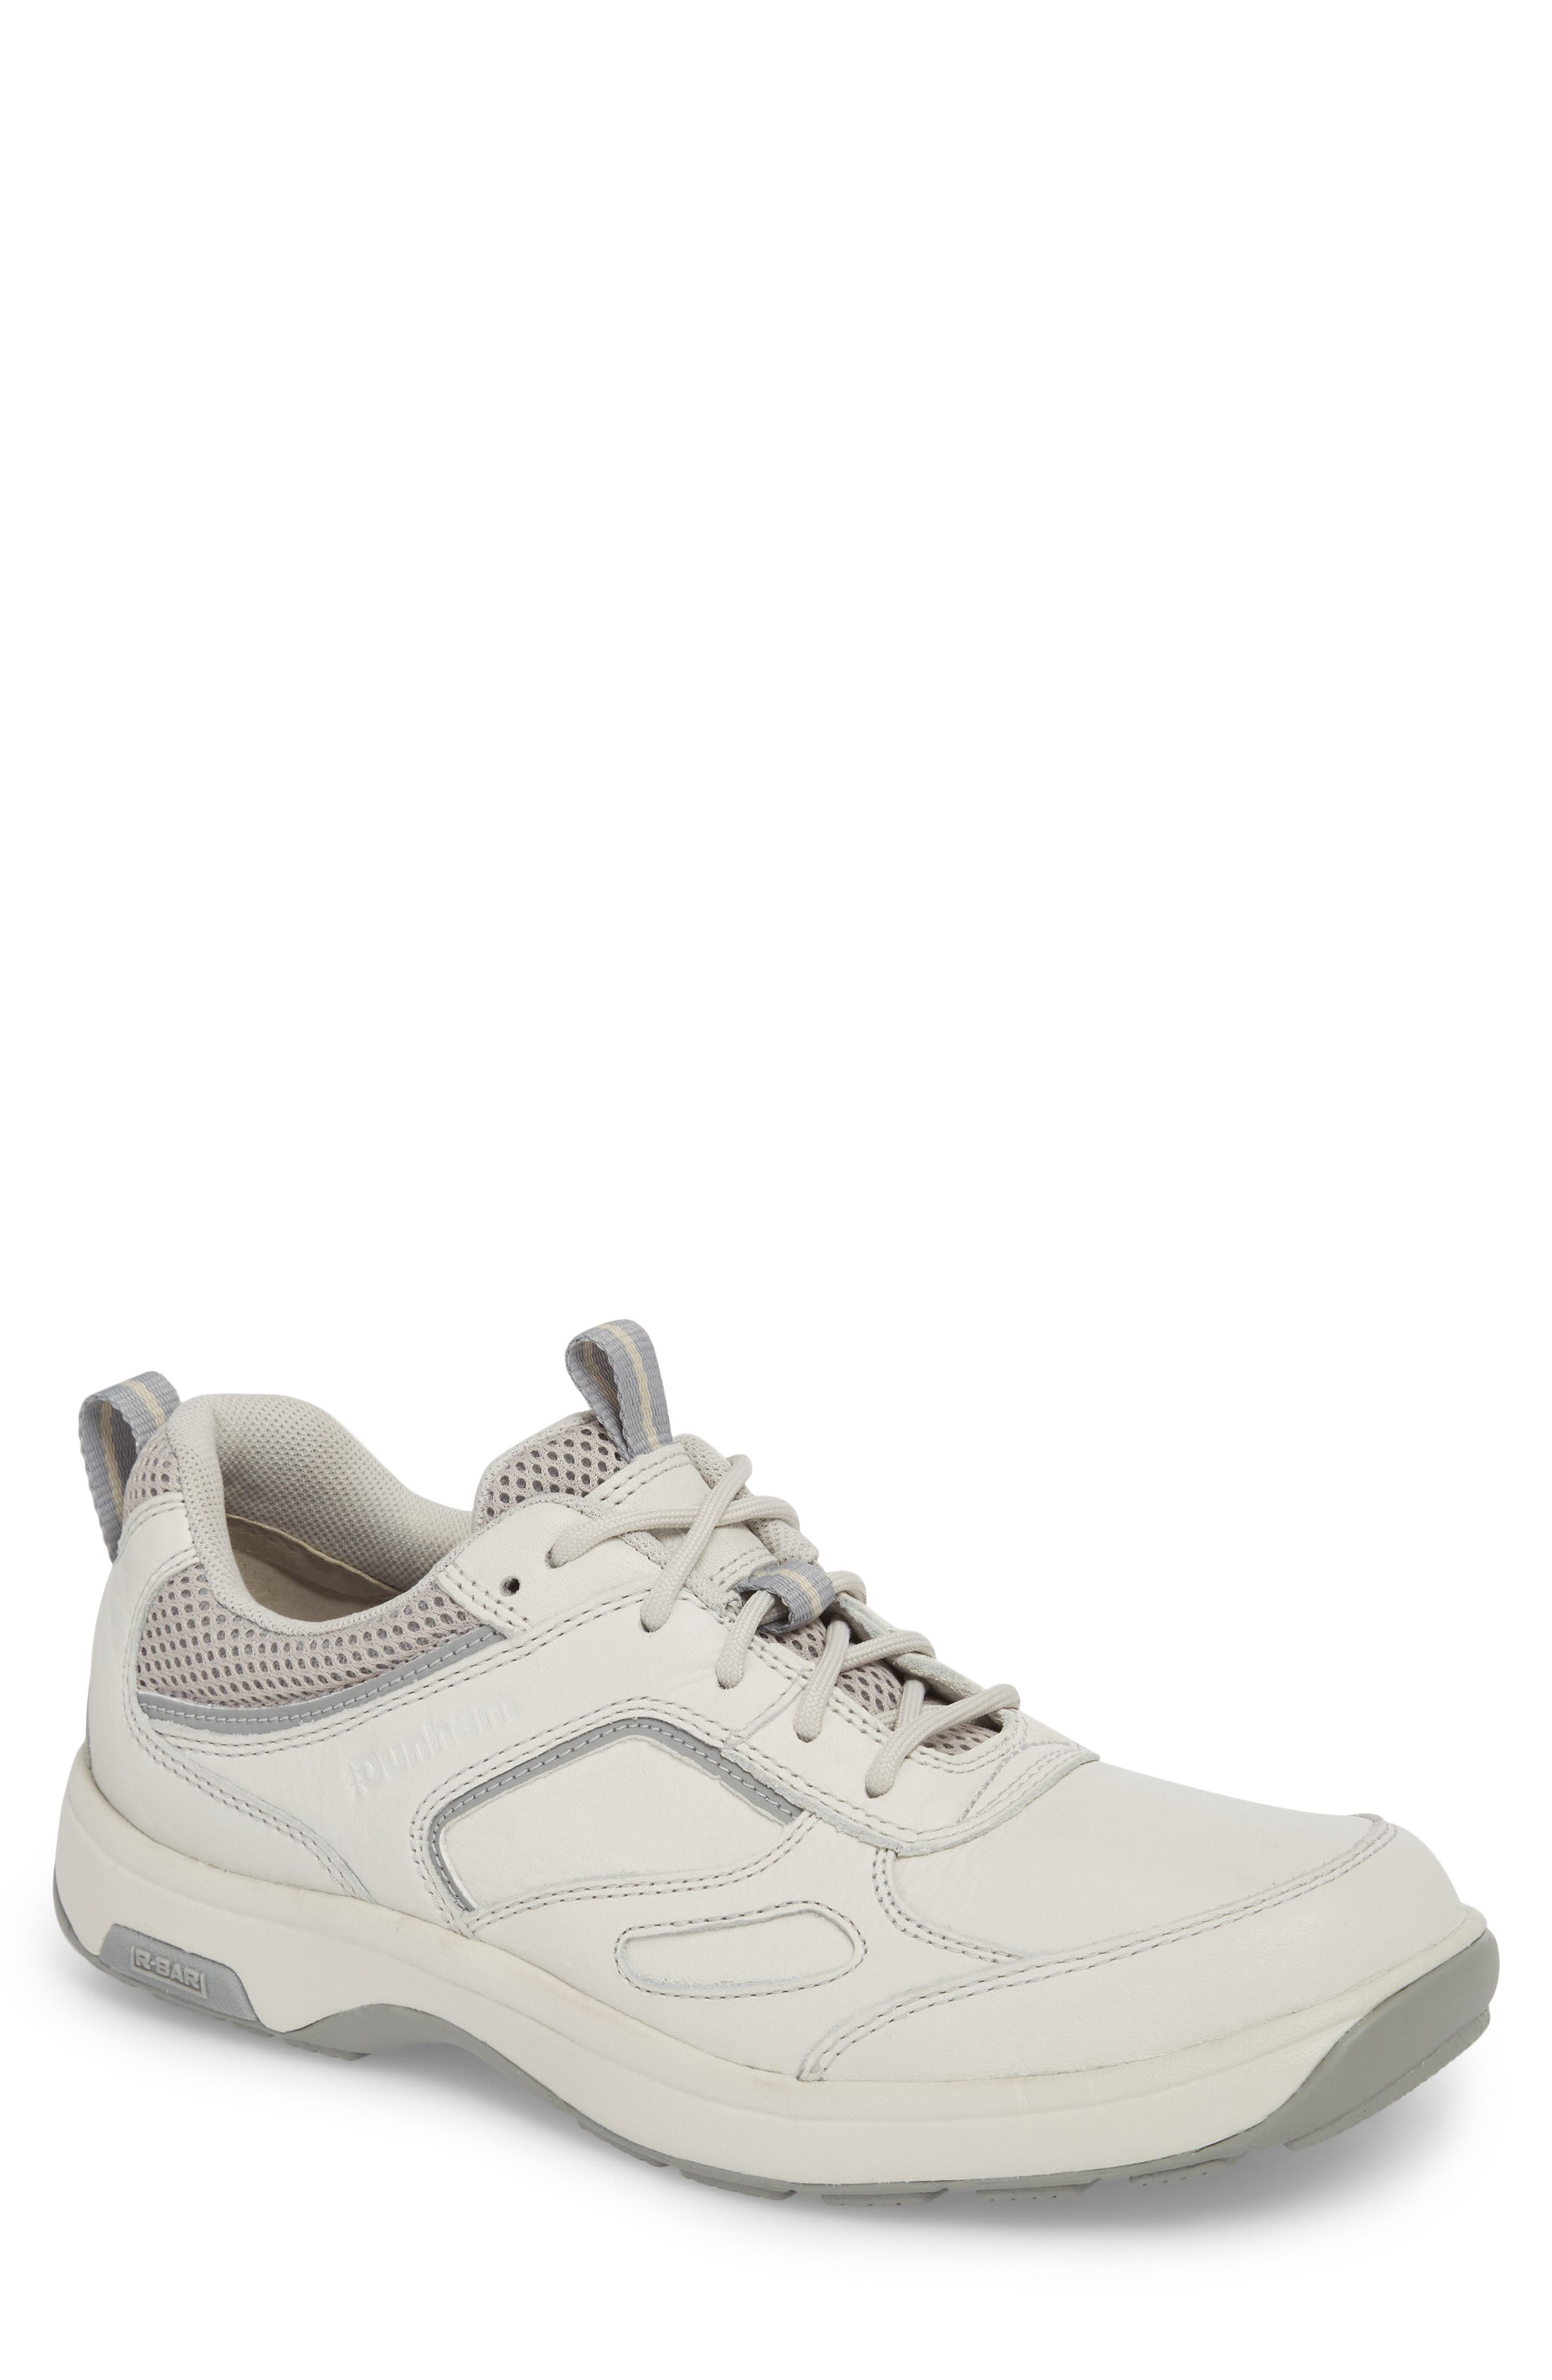 8000 Uball Sneaker,                         Main,                         color, Off White Leather